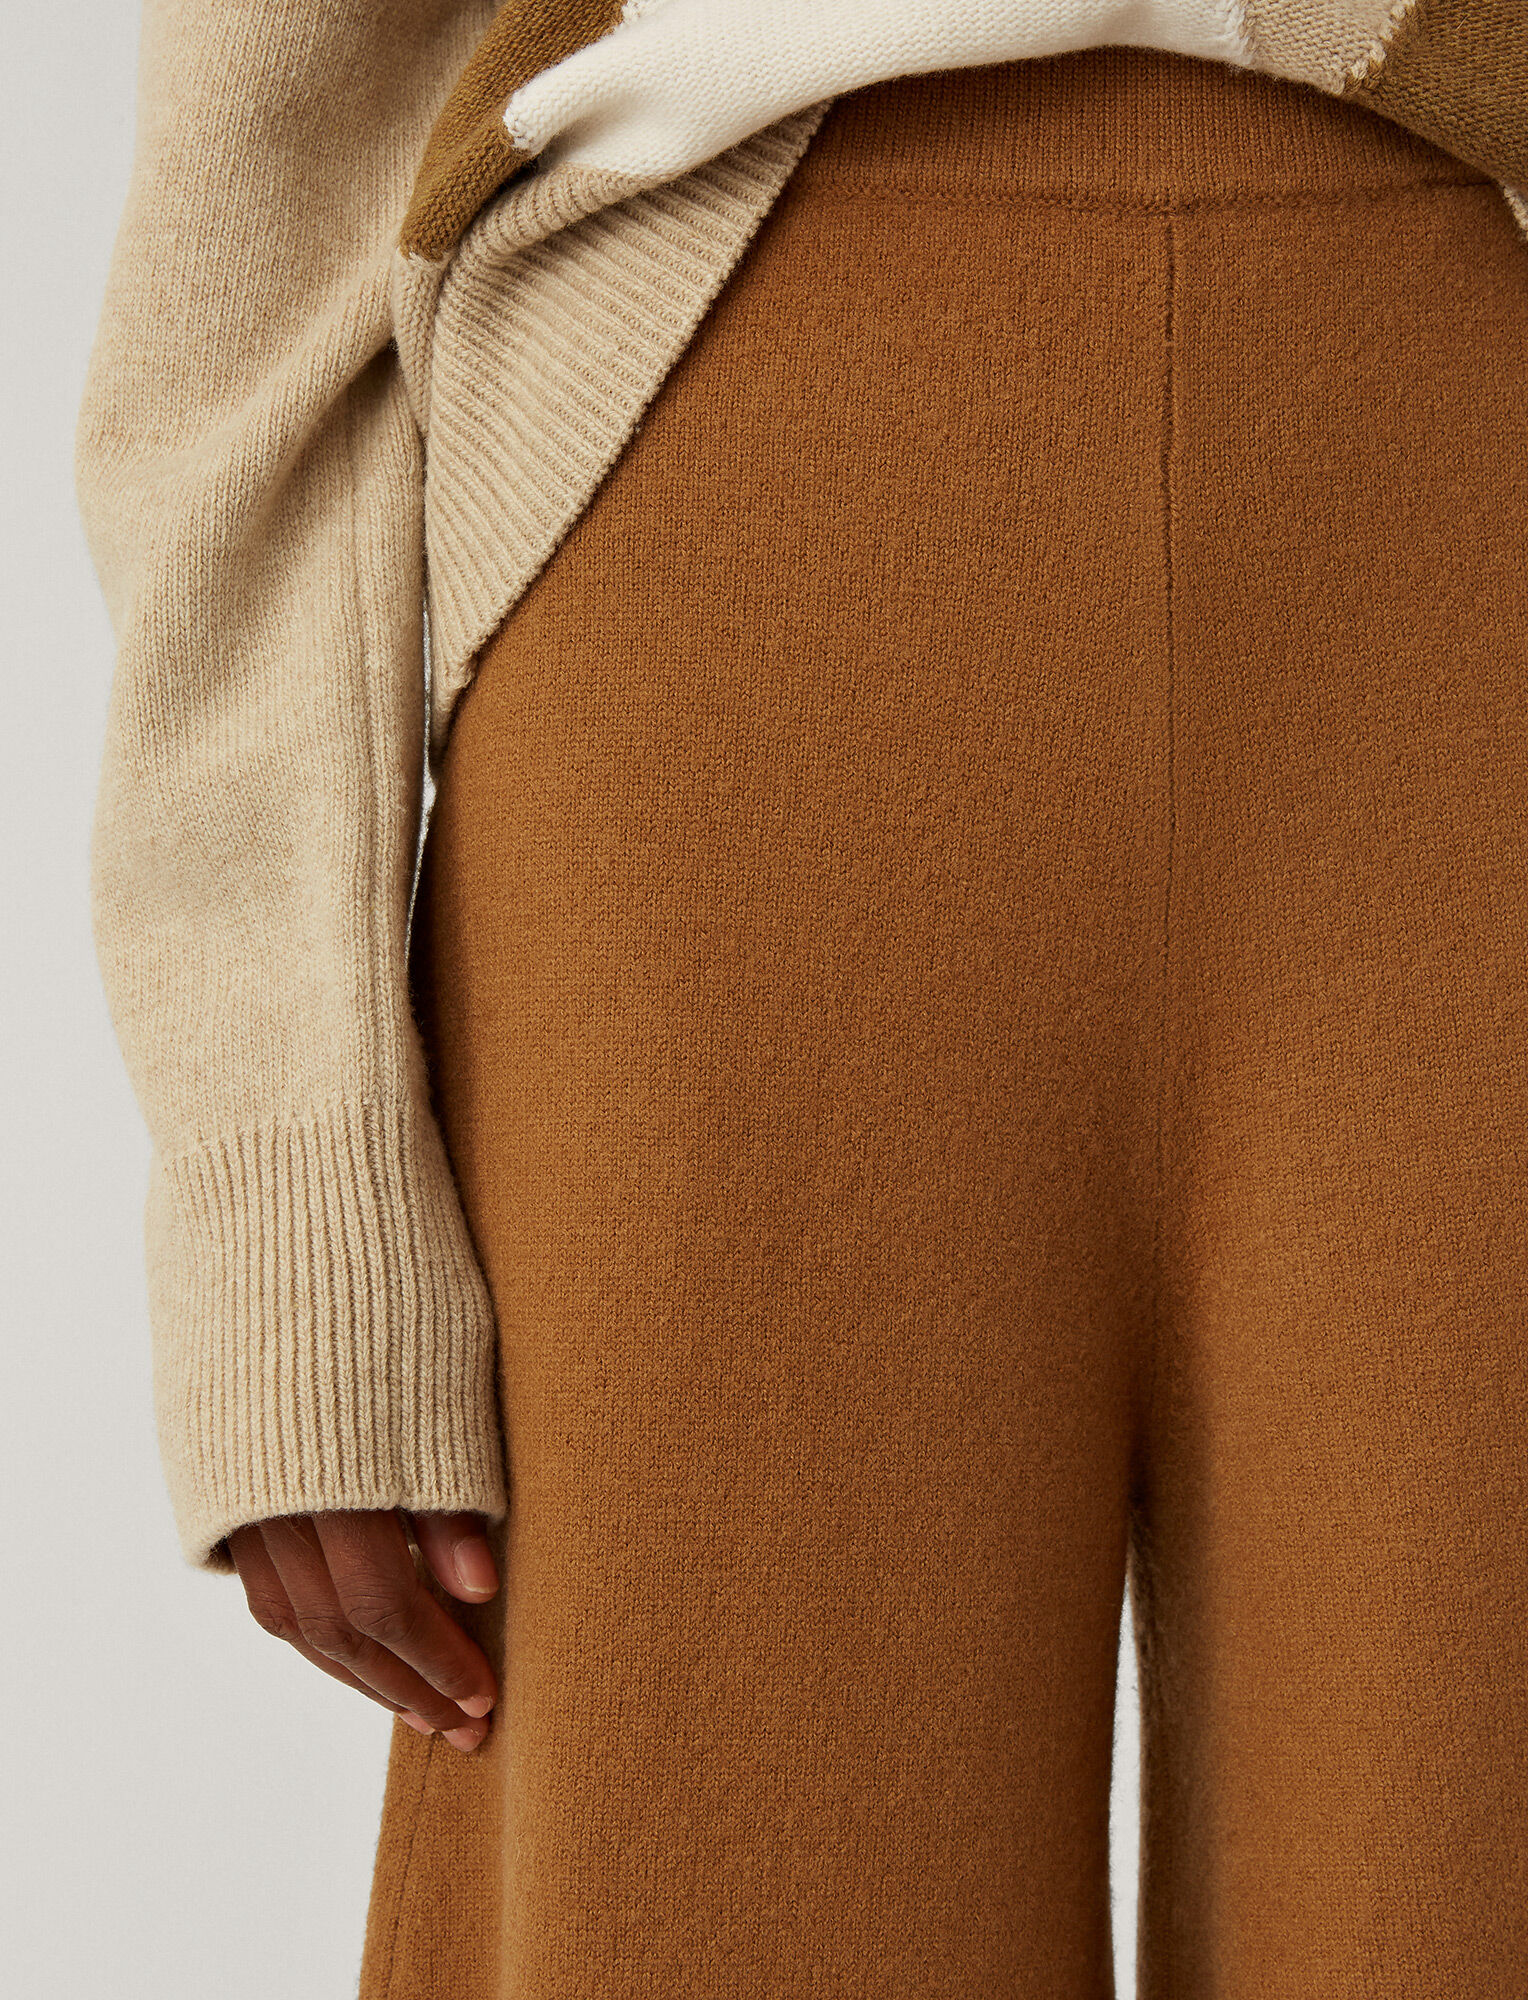 Joseph, Culotte Pants Boiled Wool Knit, in Camel